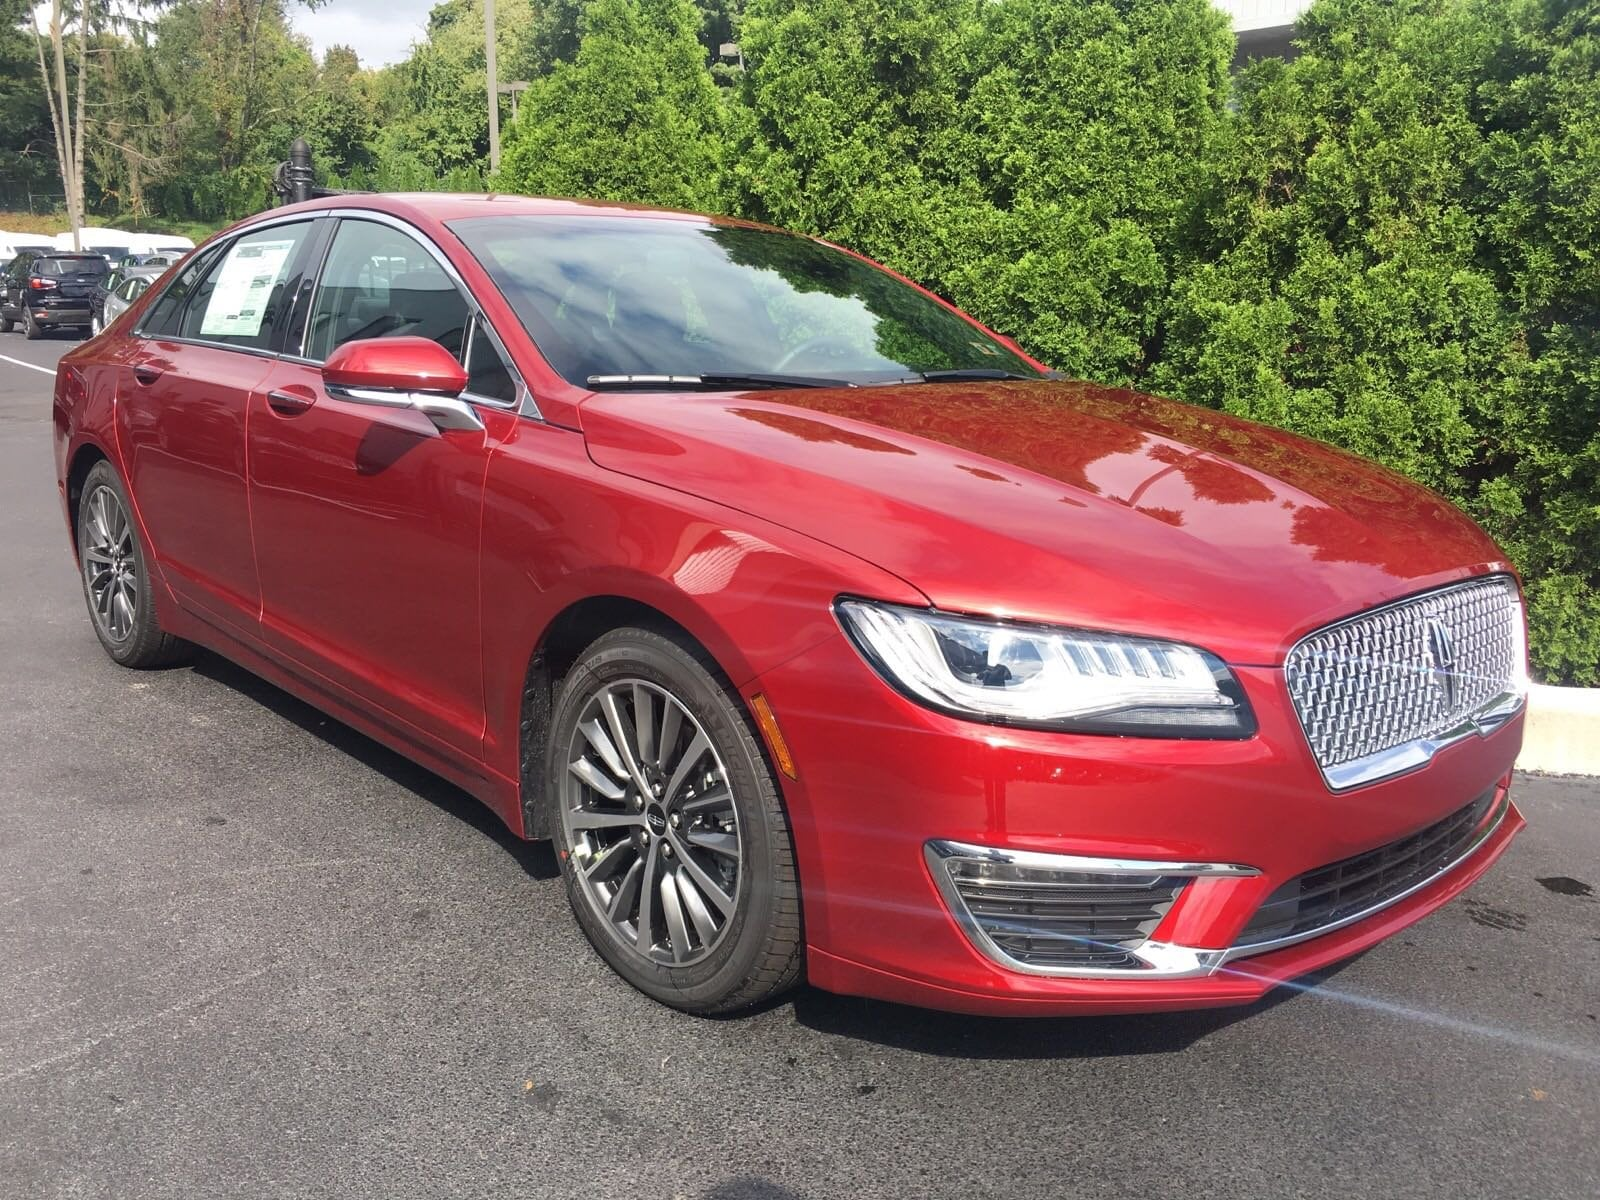 New 2019 Lincoln MKZ HE Sedan For Sale in Springfield, PA